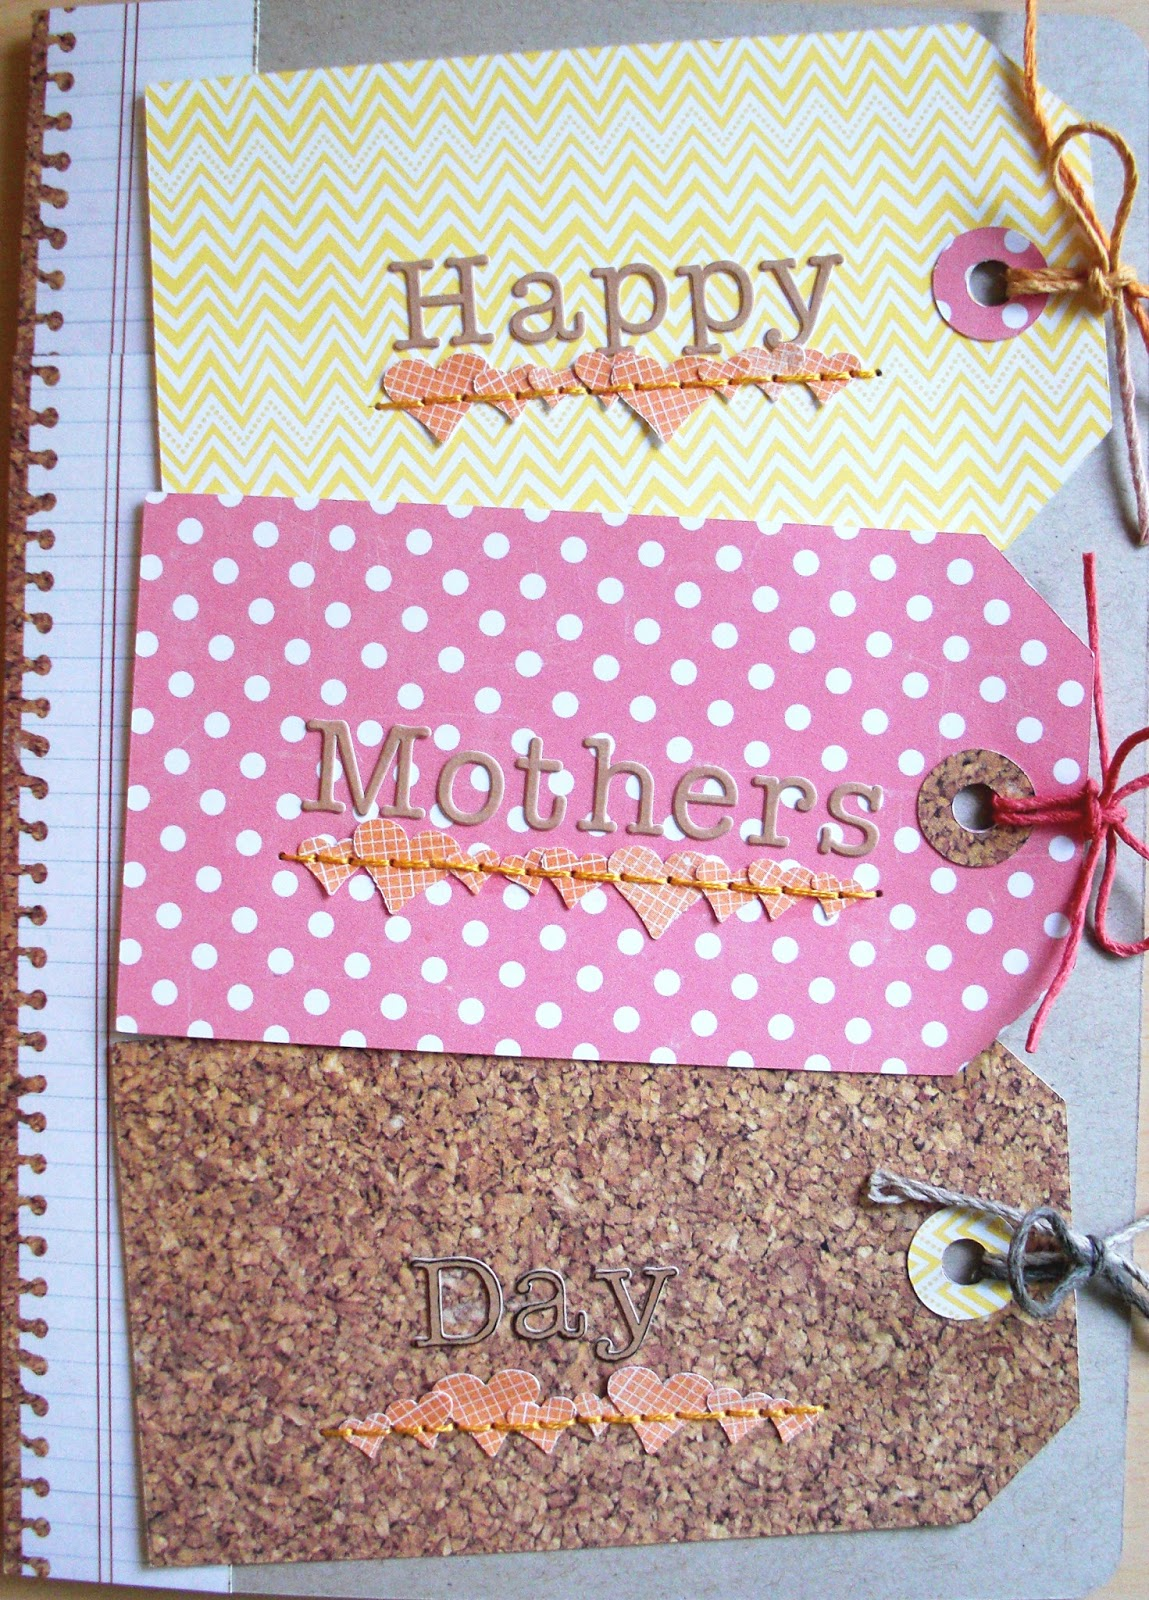 scrapper emily mothers day cards and a baby shower card